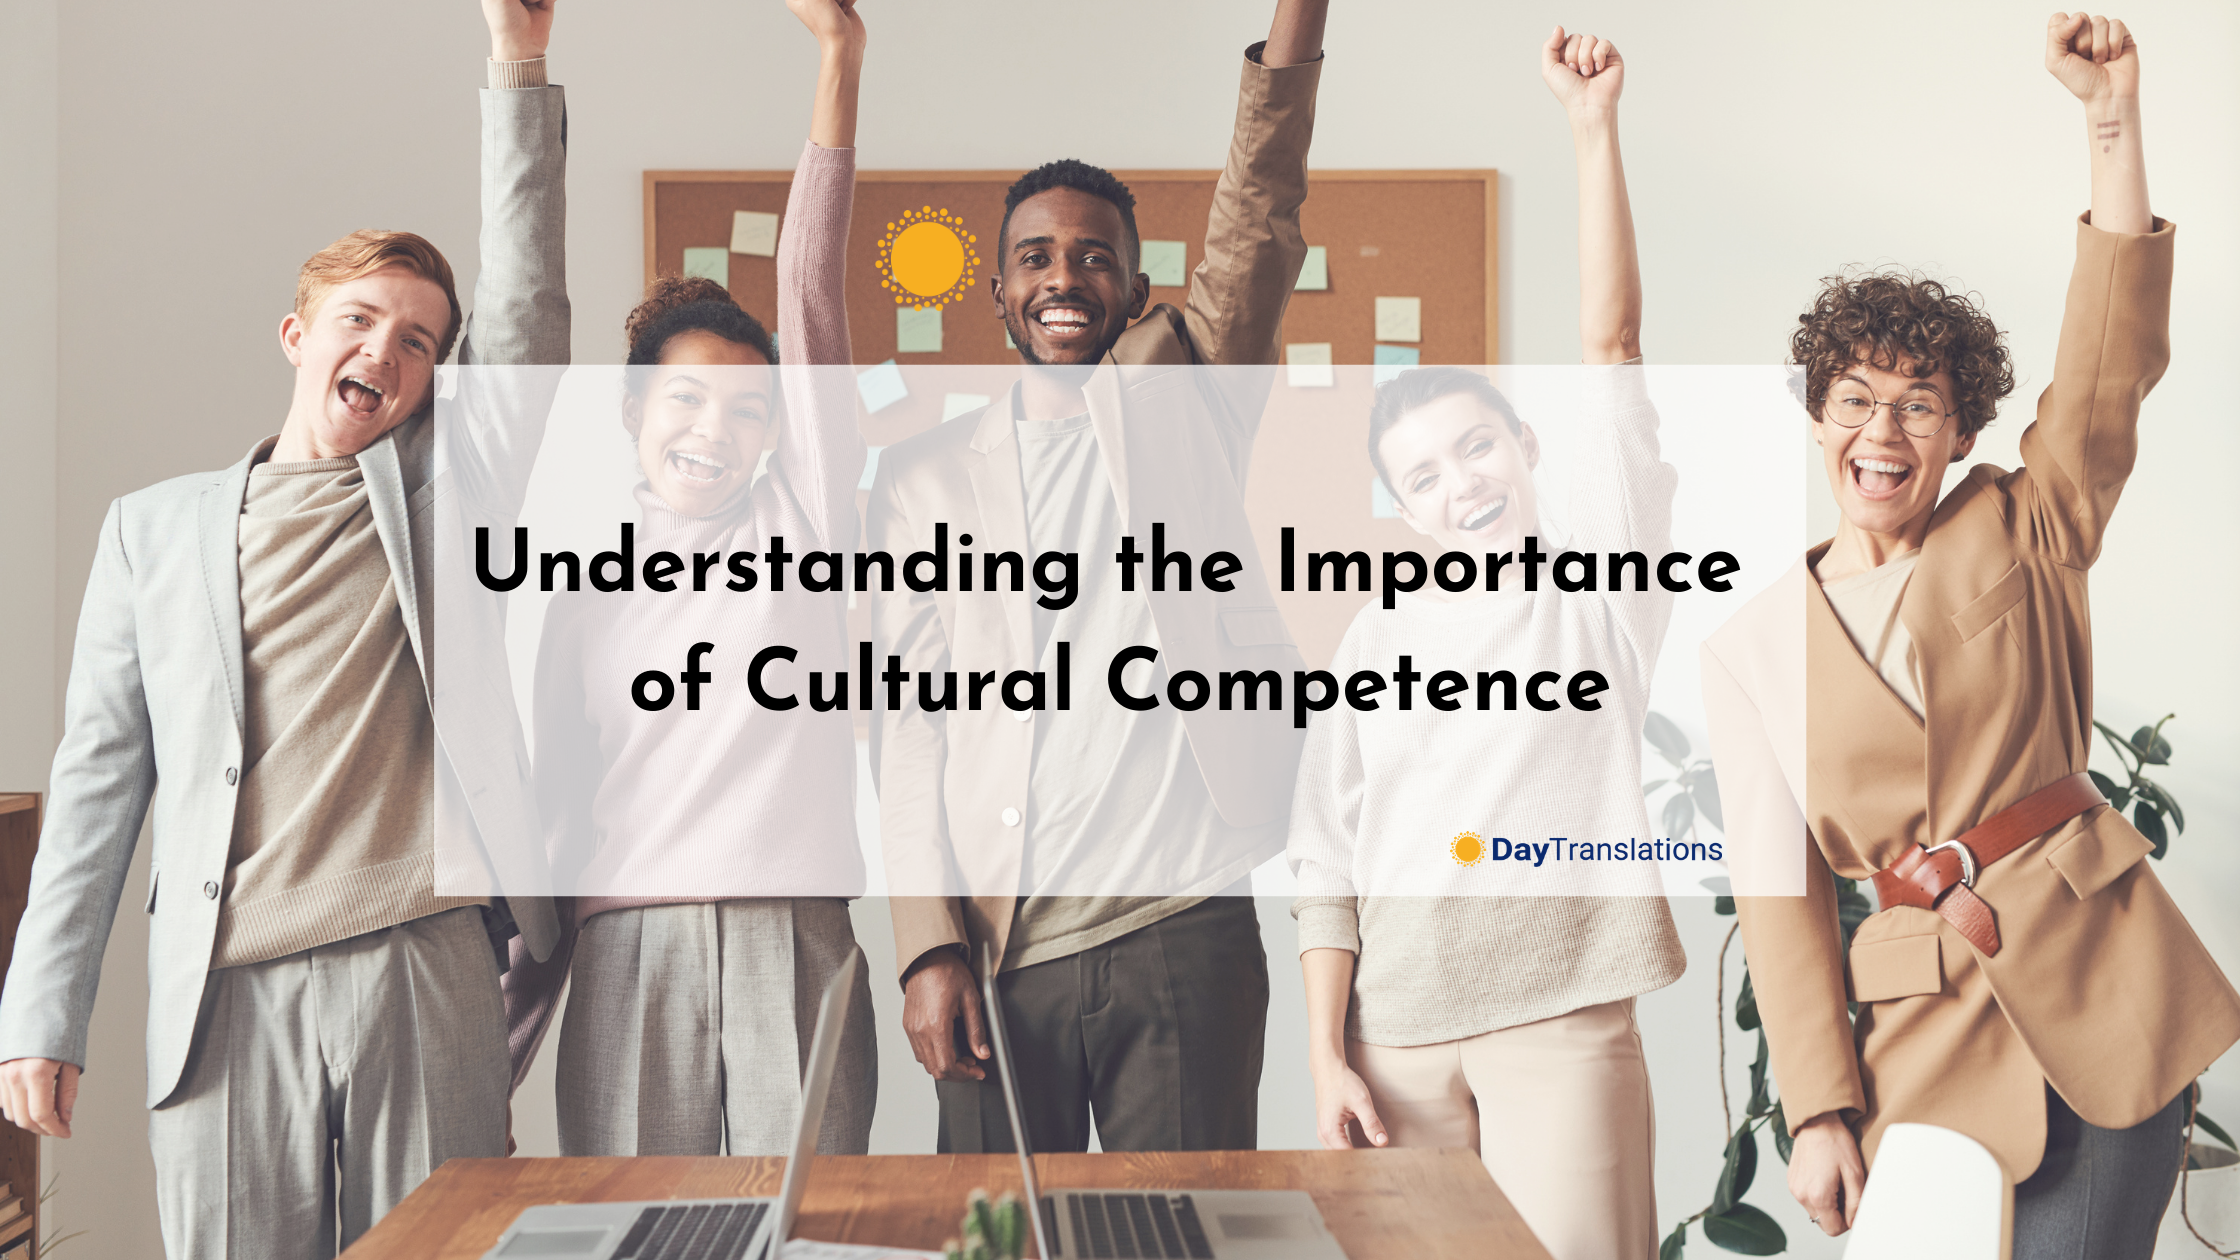 Understanding the Importance of Cultural Competence